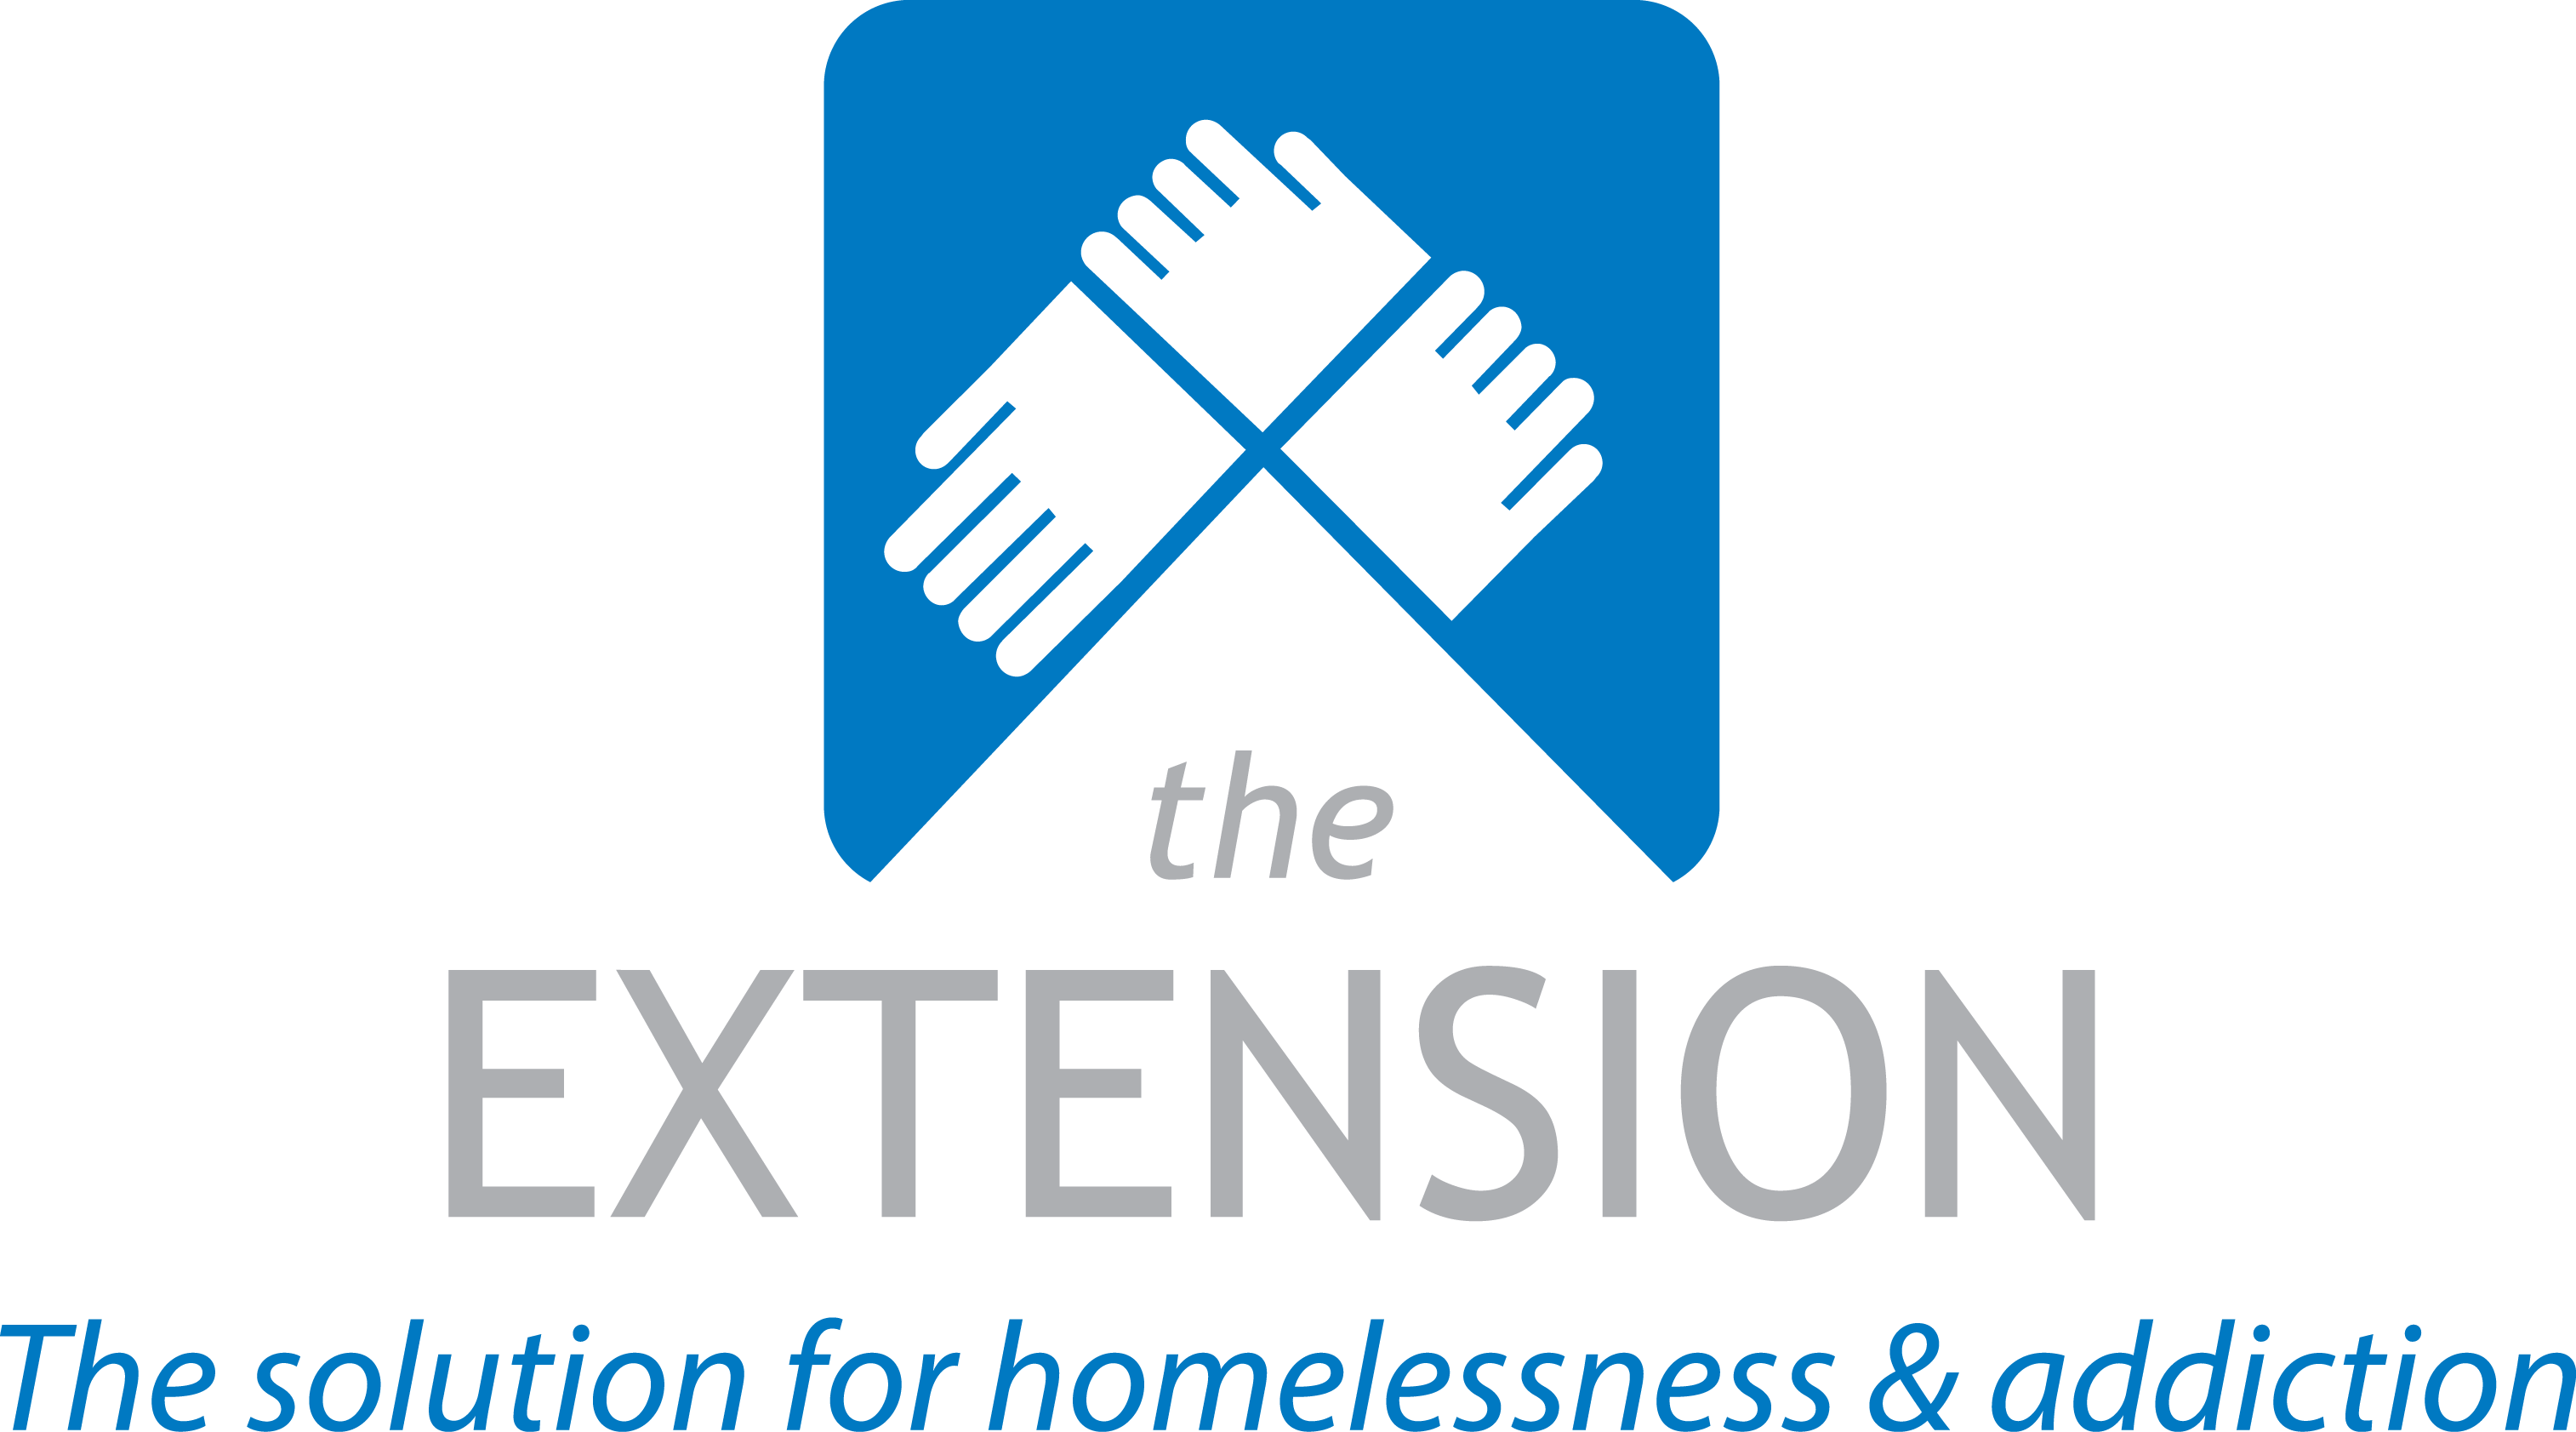 The Extension